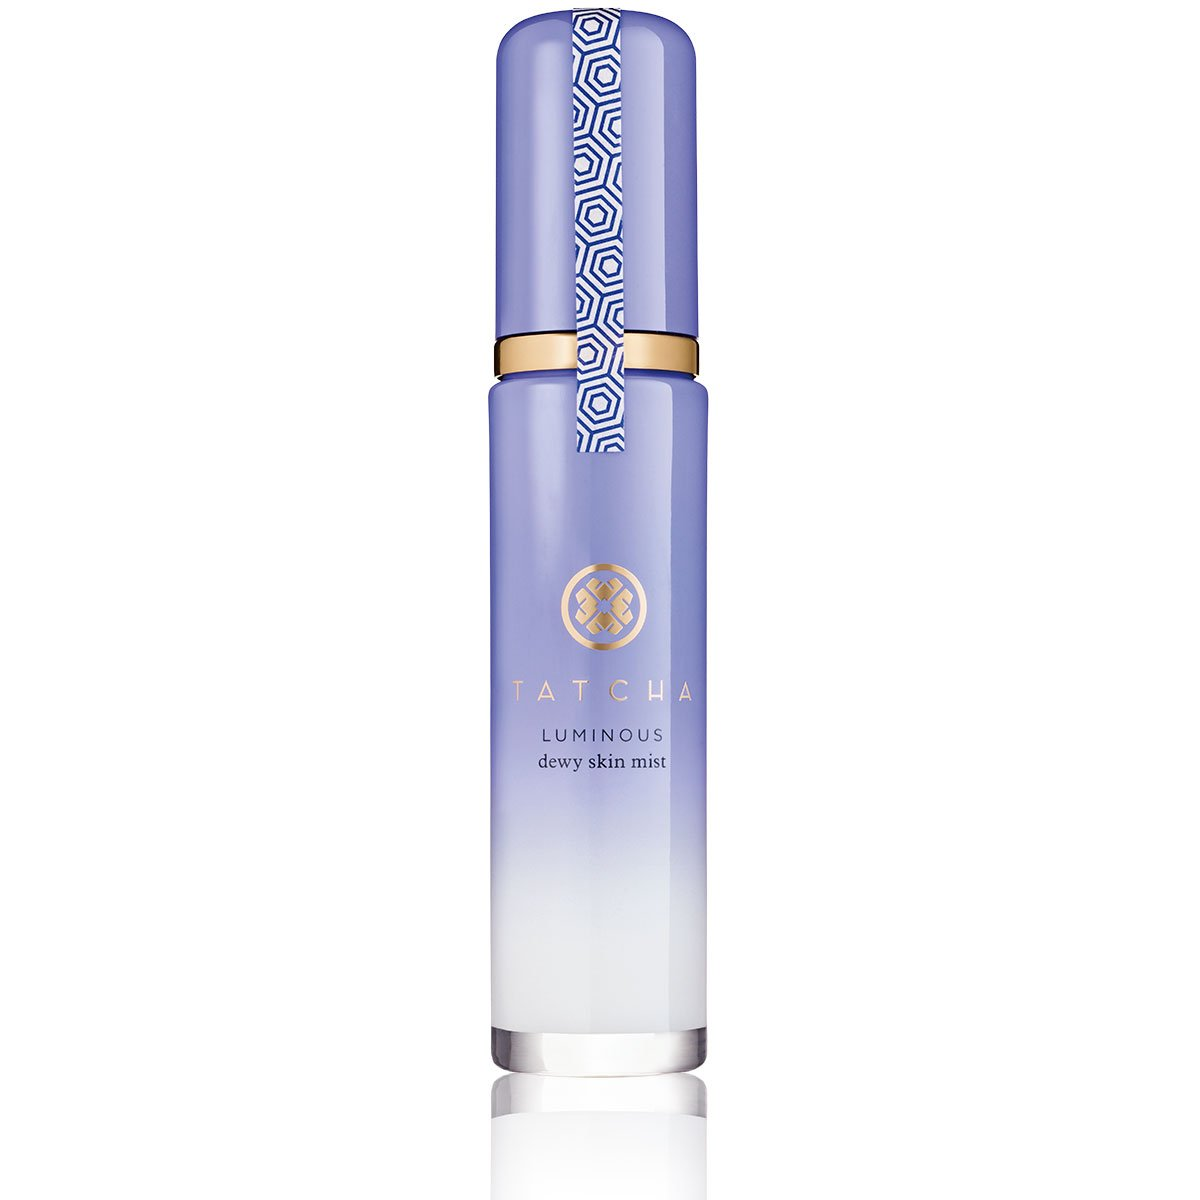 Tatcha Luminous Dewy Skin Mist by Tatcha